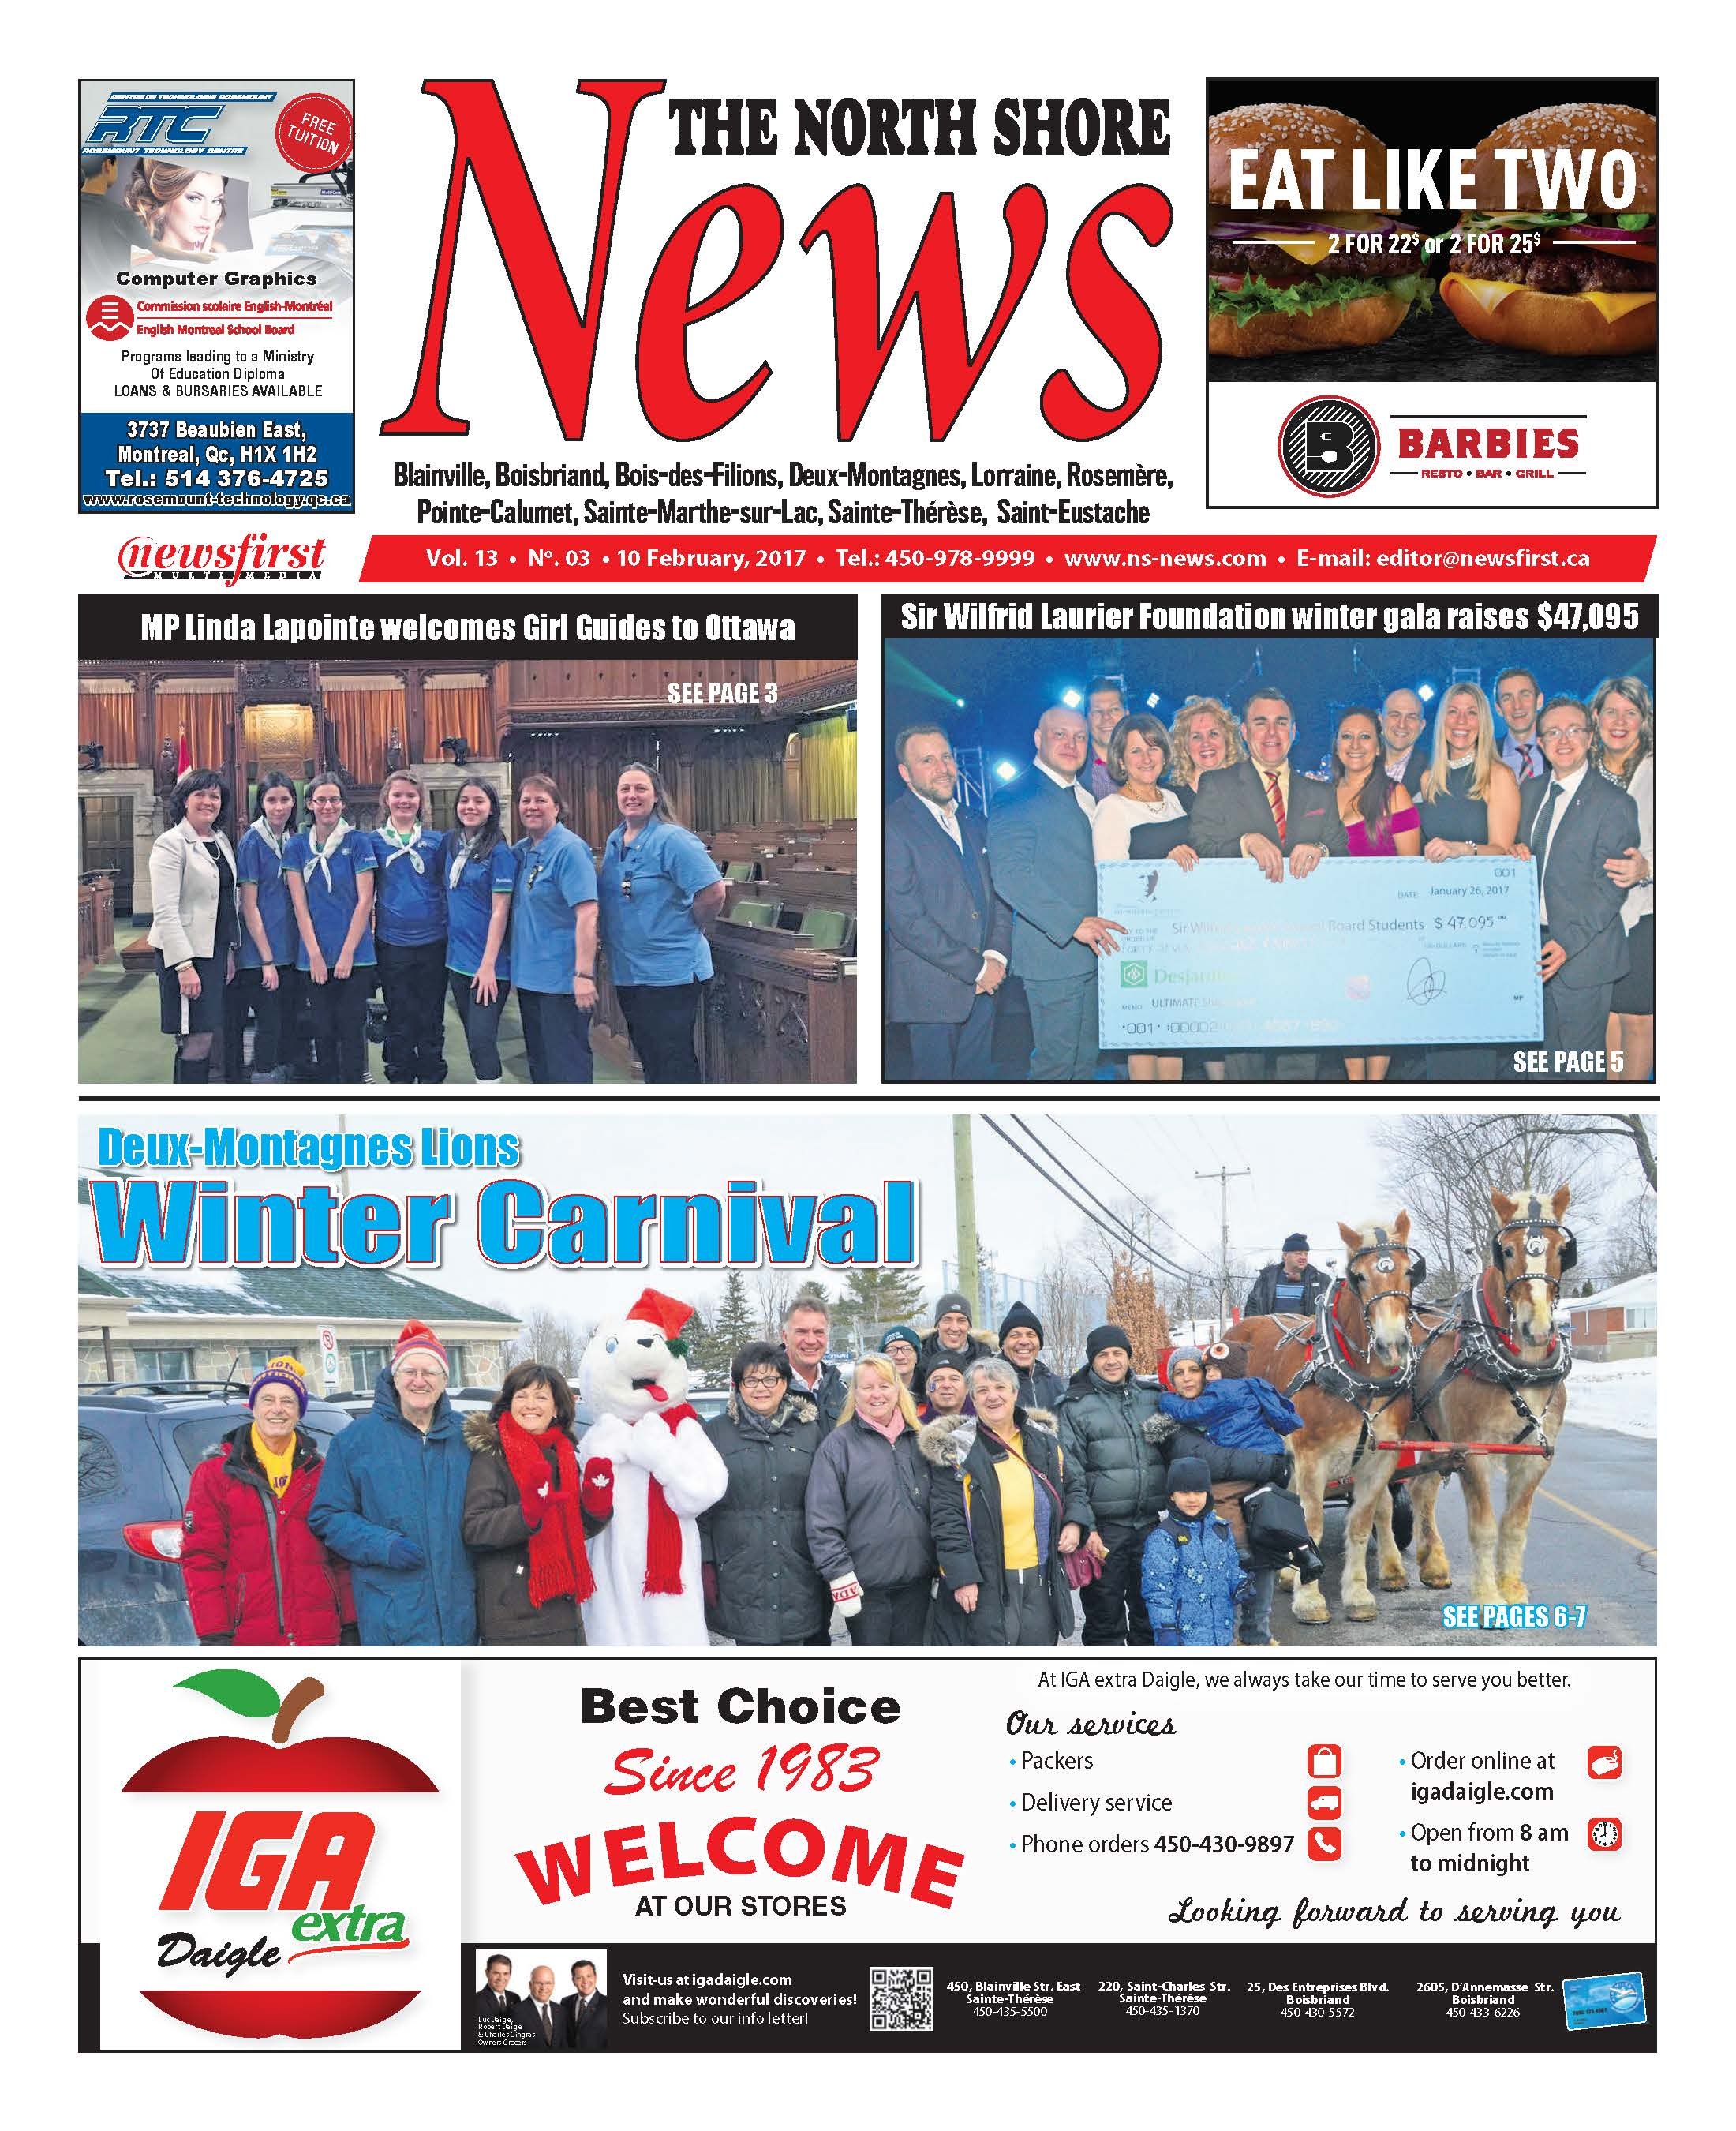 Front page image of the North Shore News Volume 13-3